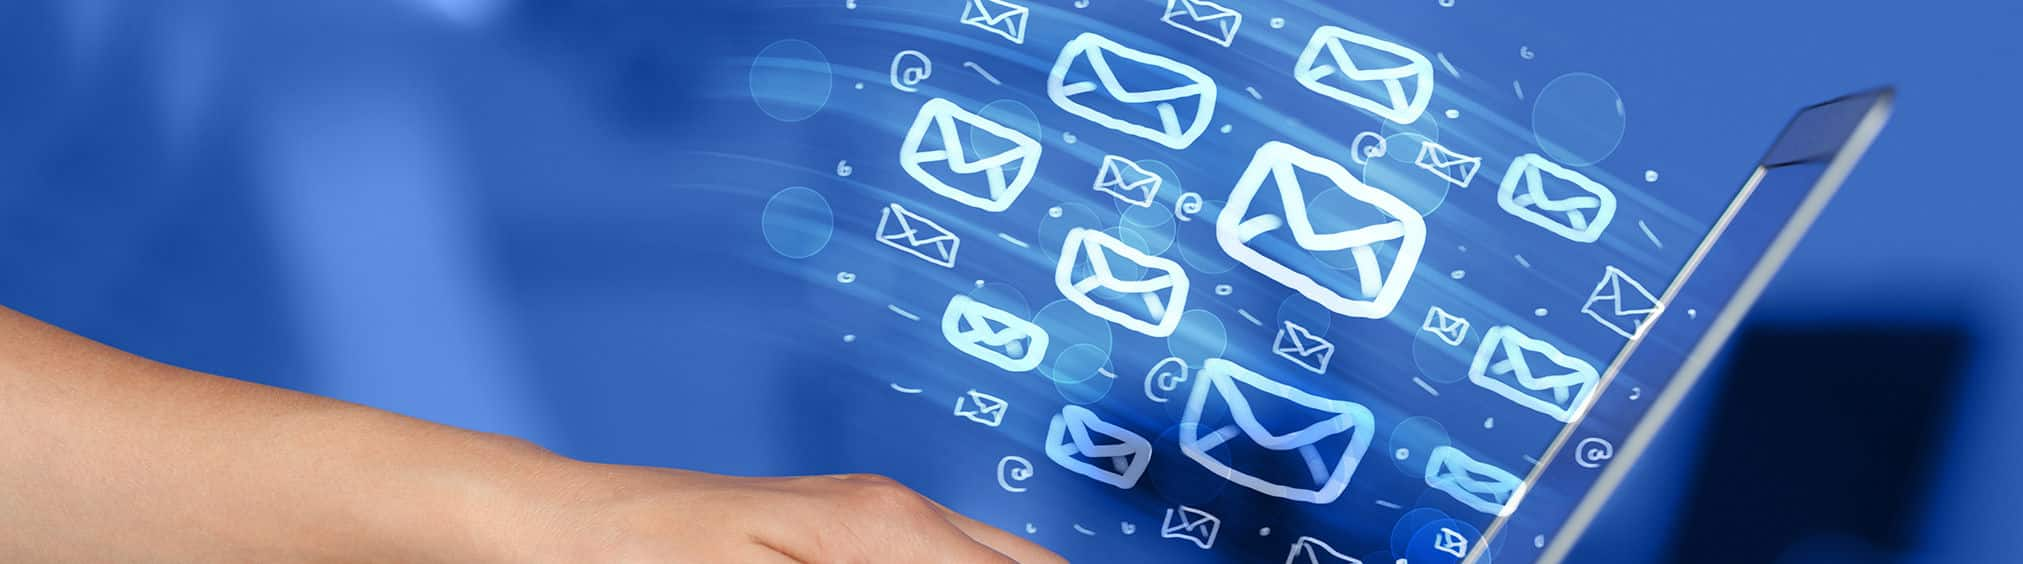 Email Marketing services in Birmingham